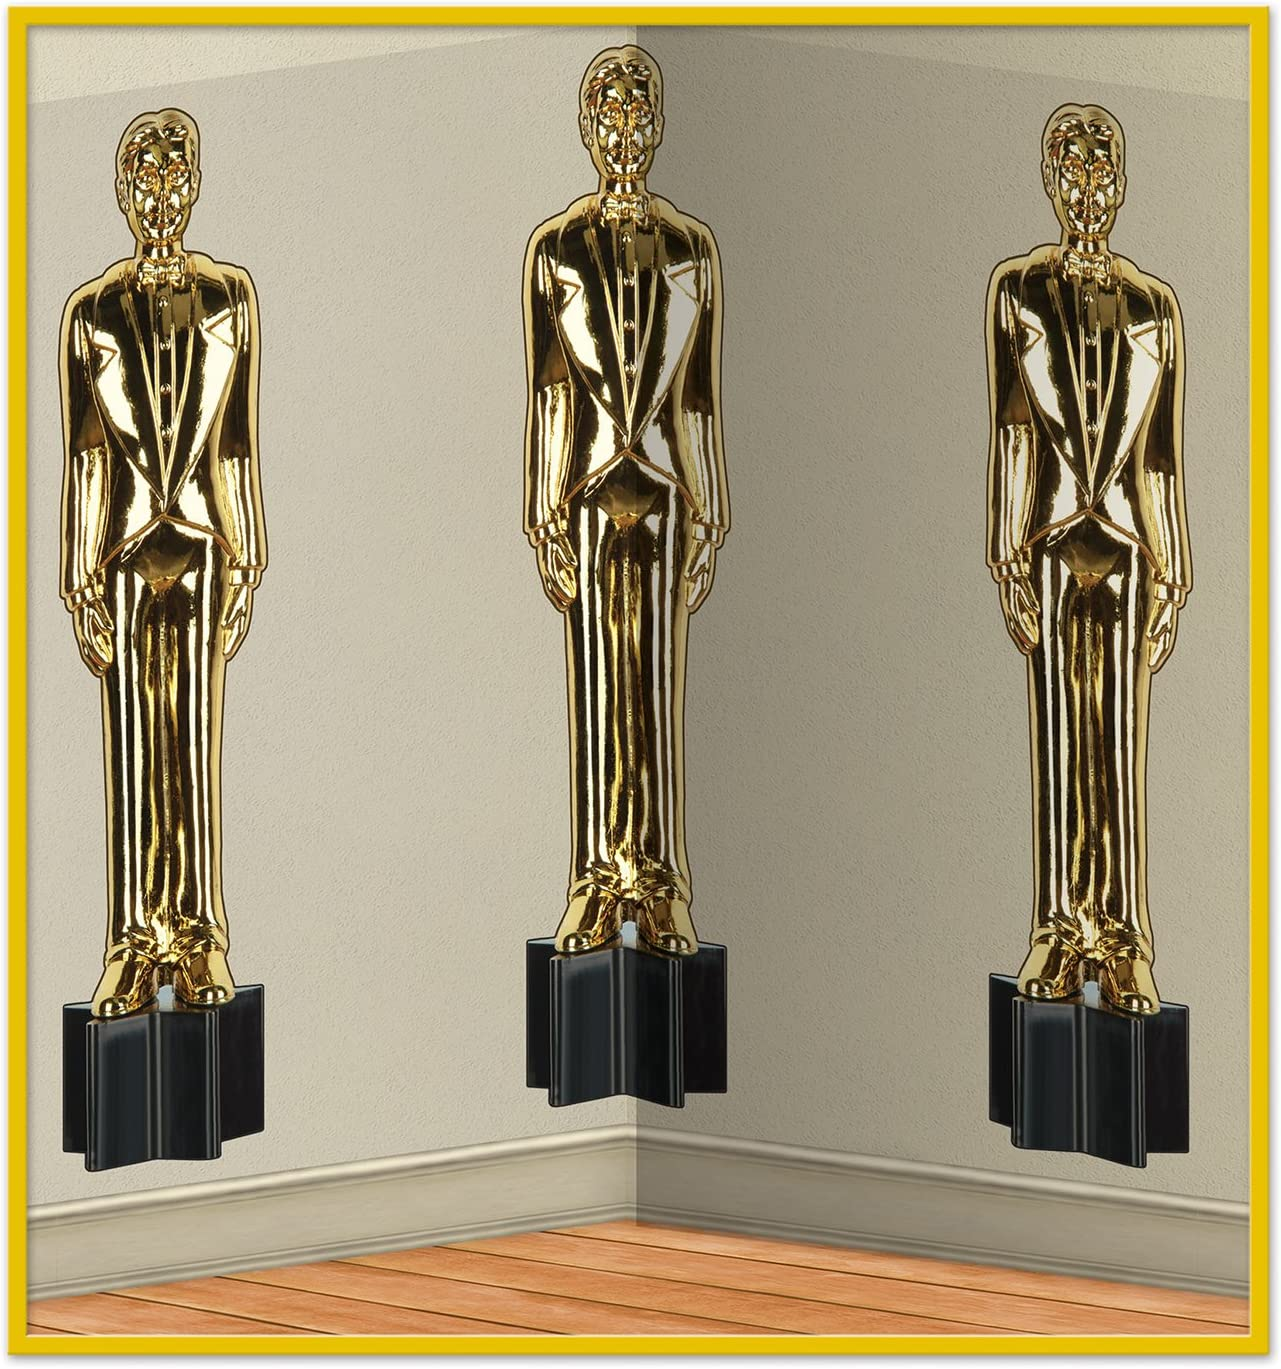 Beistle Awards Night Male Statuettes Backdrop, 4' x 30', Gold/Black/Clear